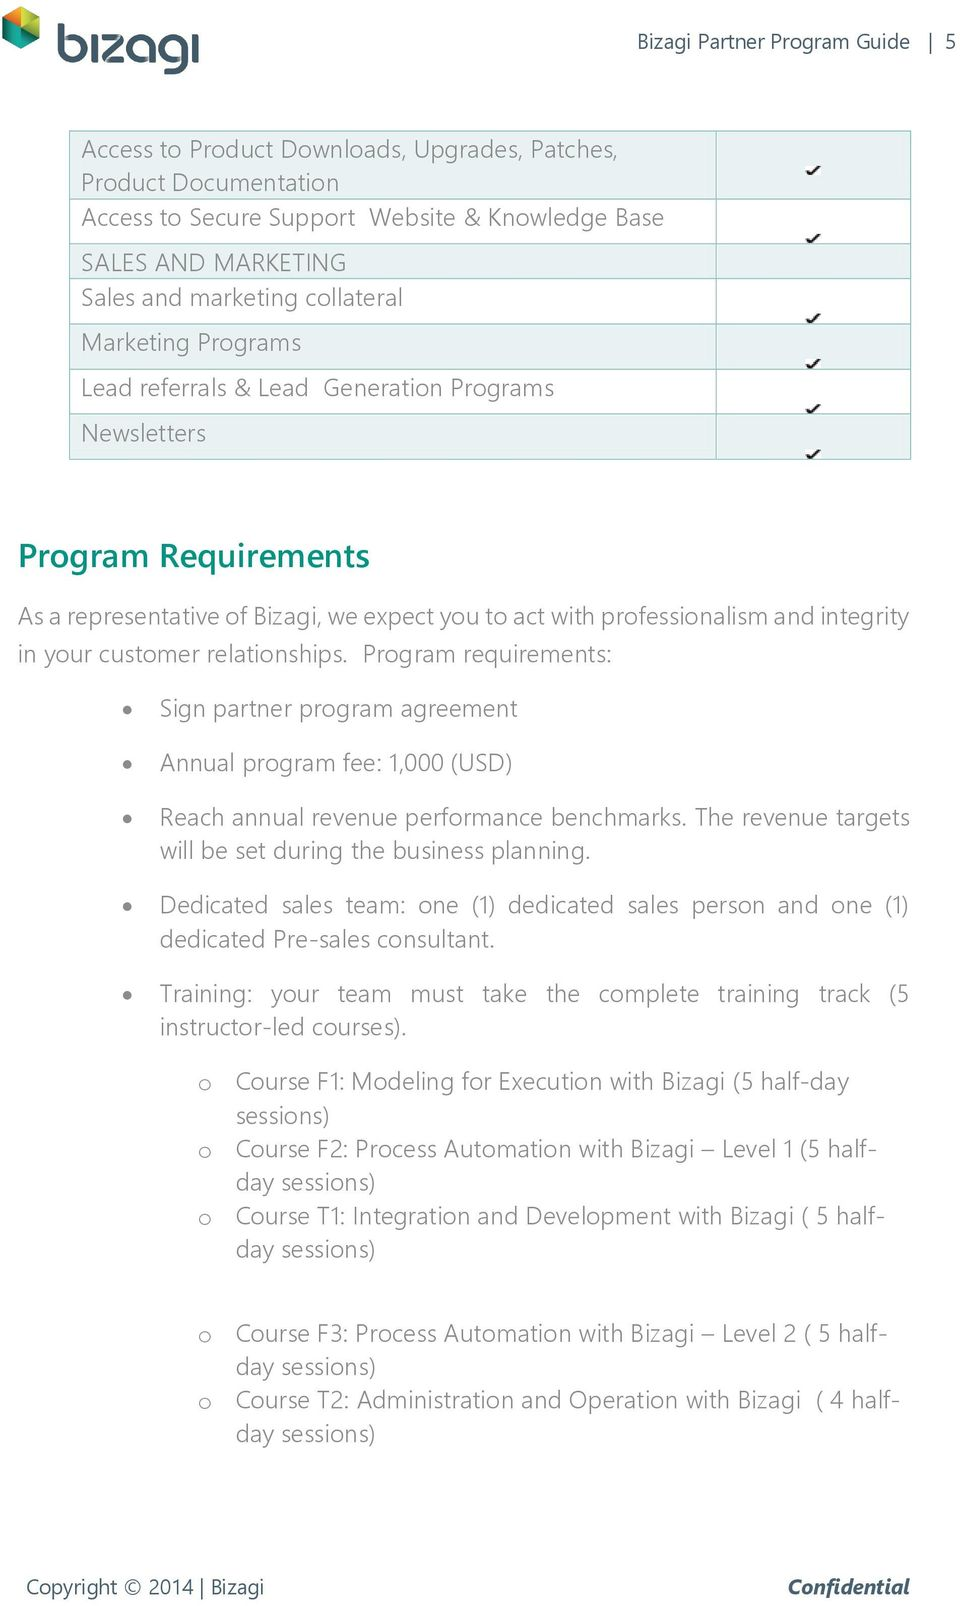 customer relationships. Program requirements: Sign partner program agreement Annual program fee: 1,000 (USD) Reach annual revenue performance benchmarks.